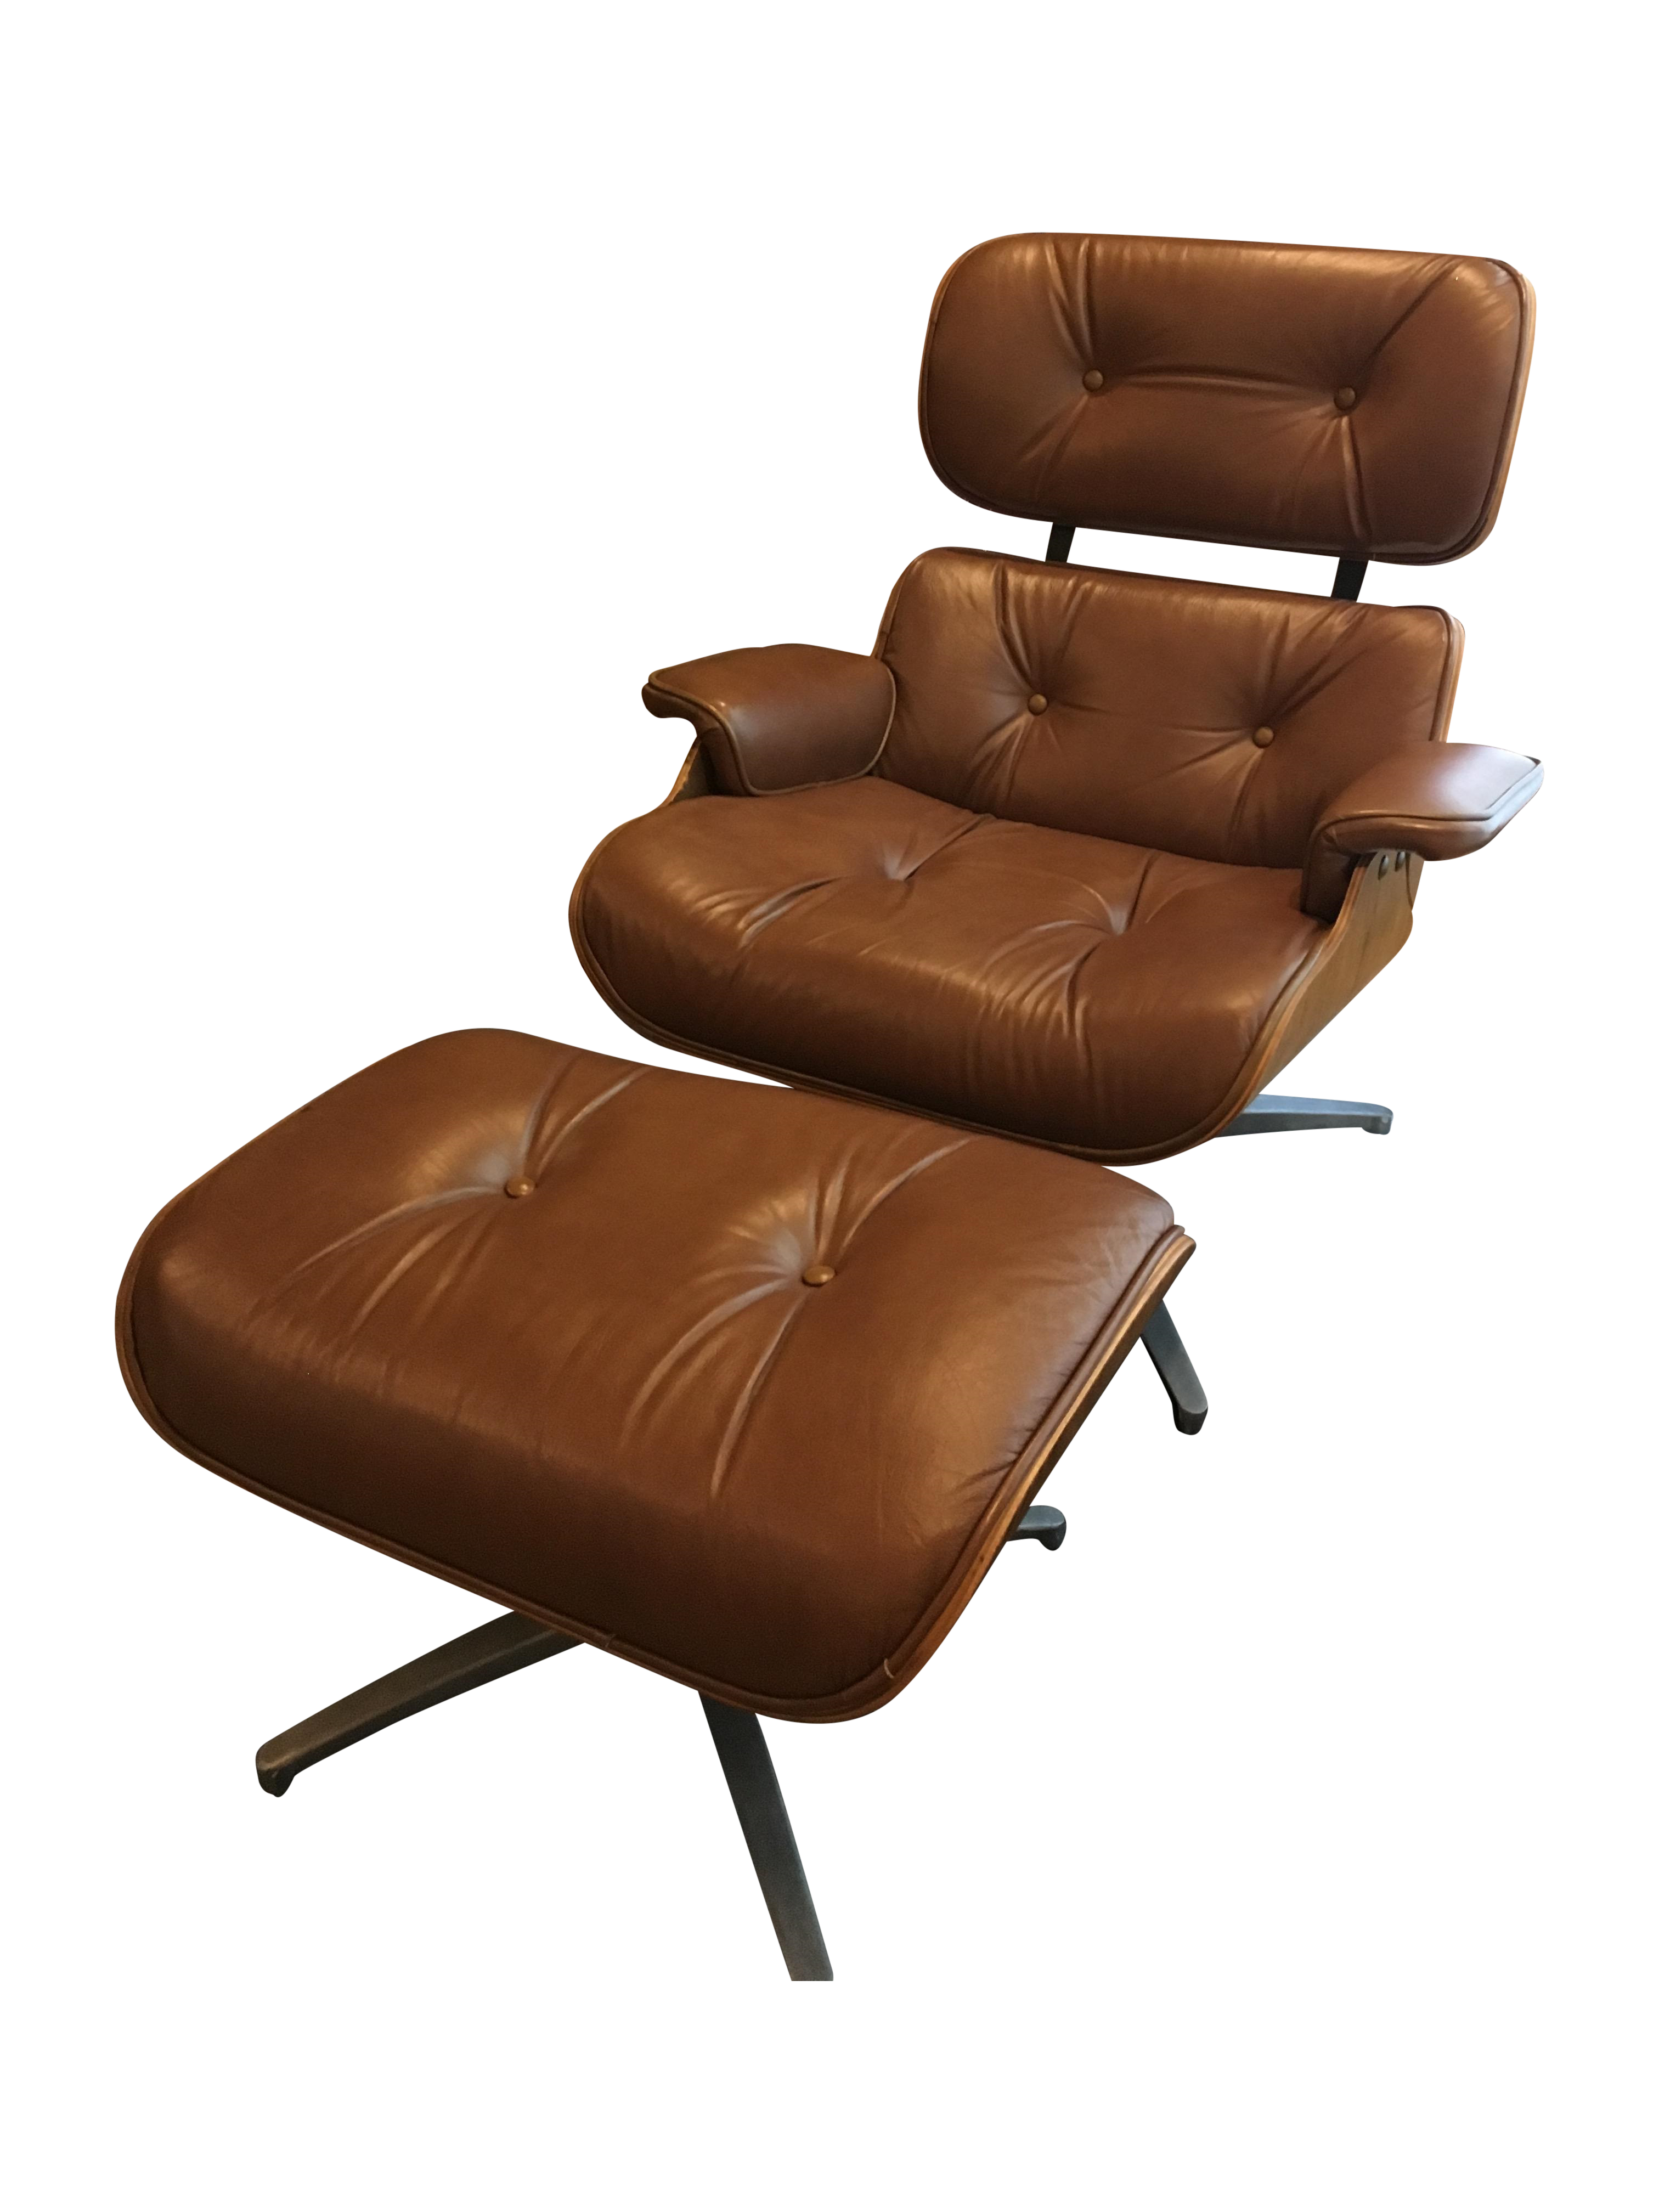 1960 segal reproduction of eames lounge chair chairish